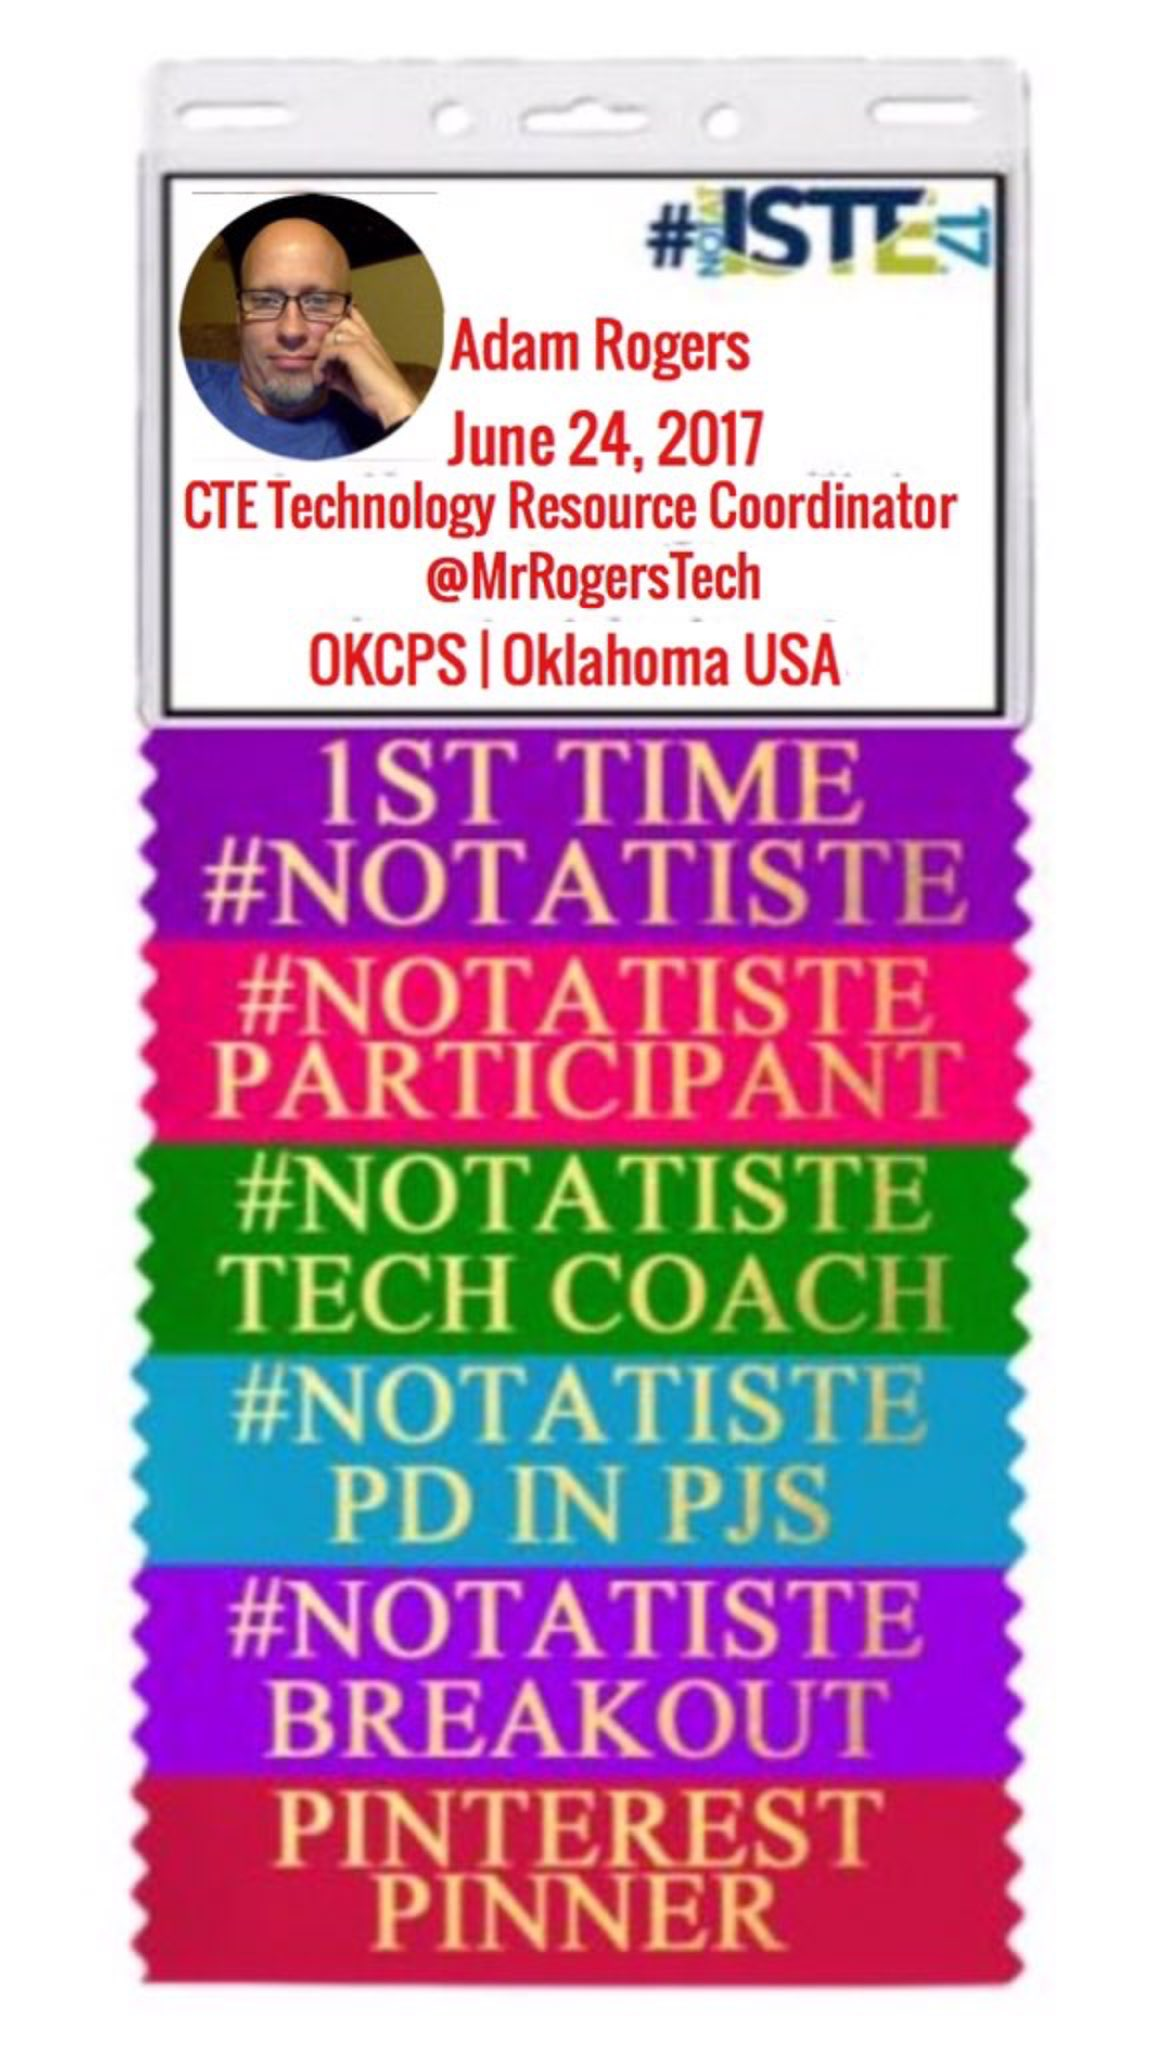 Please share while you are at #ISTE17 for those #notatISTE17 #oklaed https://t.co/vkCuESsvzy